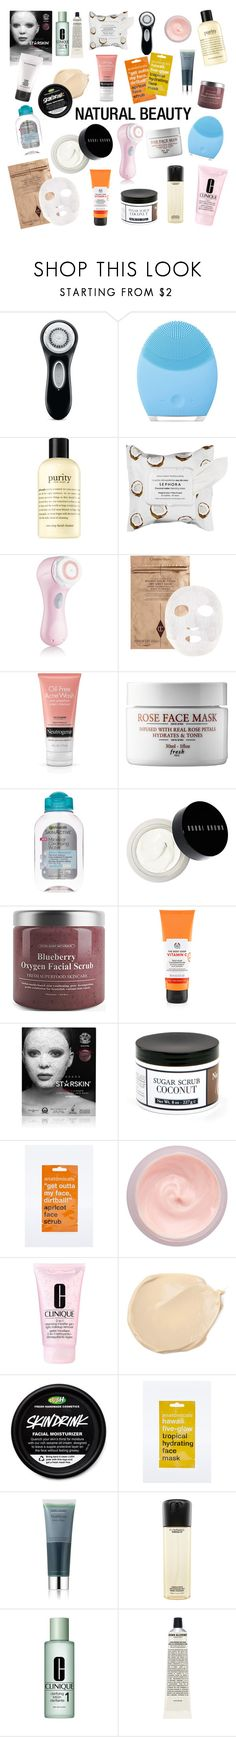 """""""Face Routine"""" by cybertrasher ❤ liked on Polyvore featuring beauty, Clarisonic, FOREO, philosophy, Sephora Collection, Bobbi Brown Cosmetics, Starskin, Archipelago Botanicals, Anatomicals and By Terry"""